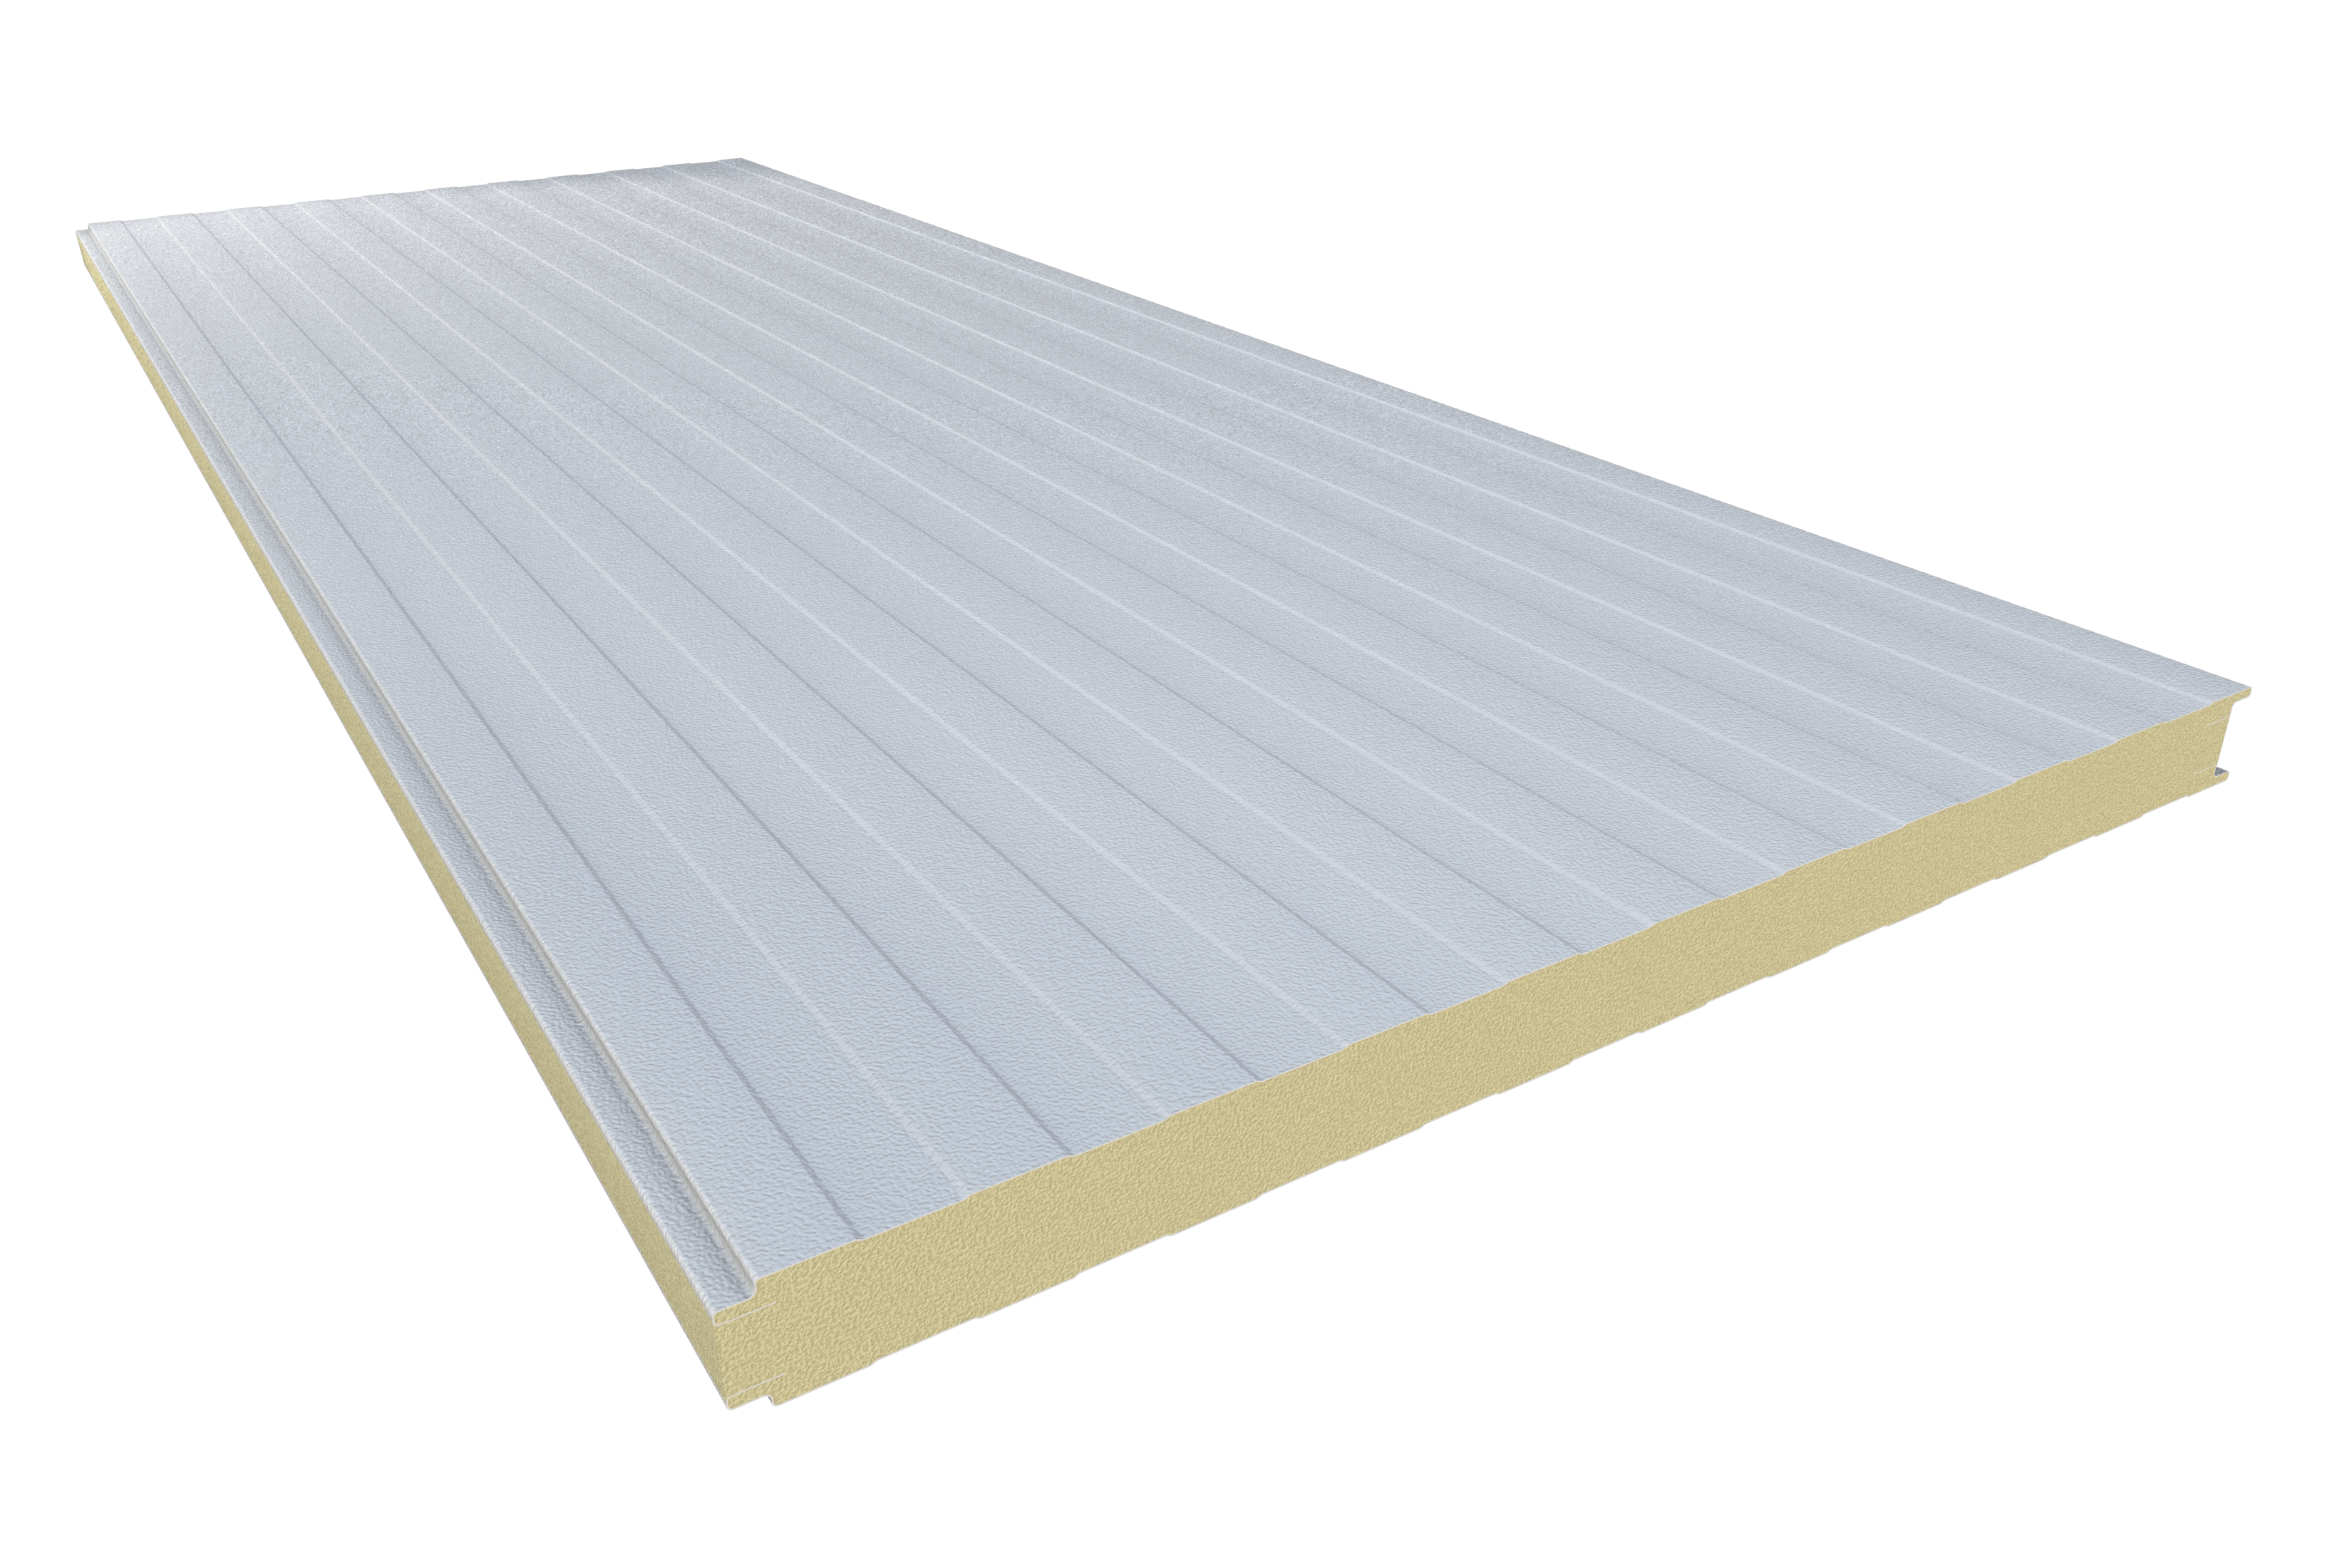 Mesa dm45 insulated metal wall paneling and roof panels awipanels our mesa dm45 insulated metal wall panel is our widest cold storage panel featuring monolithic tongue and groove joinery for fast easy installation dailygadgetfo Images